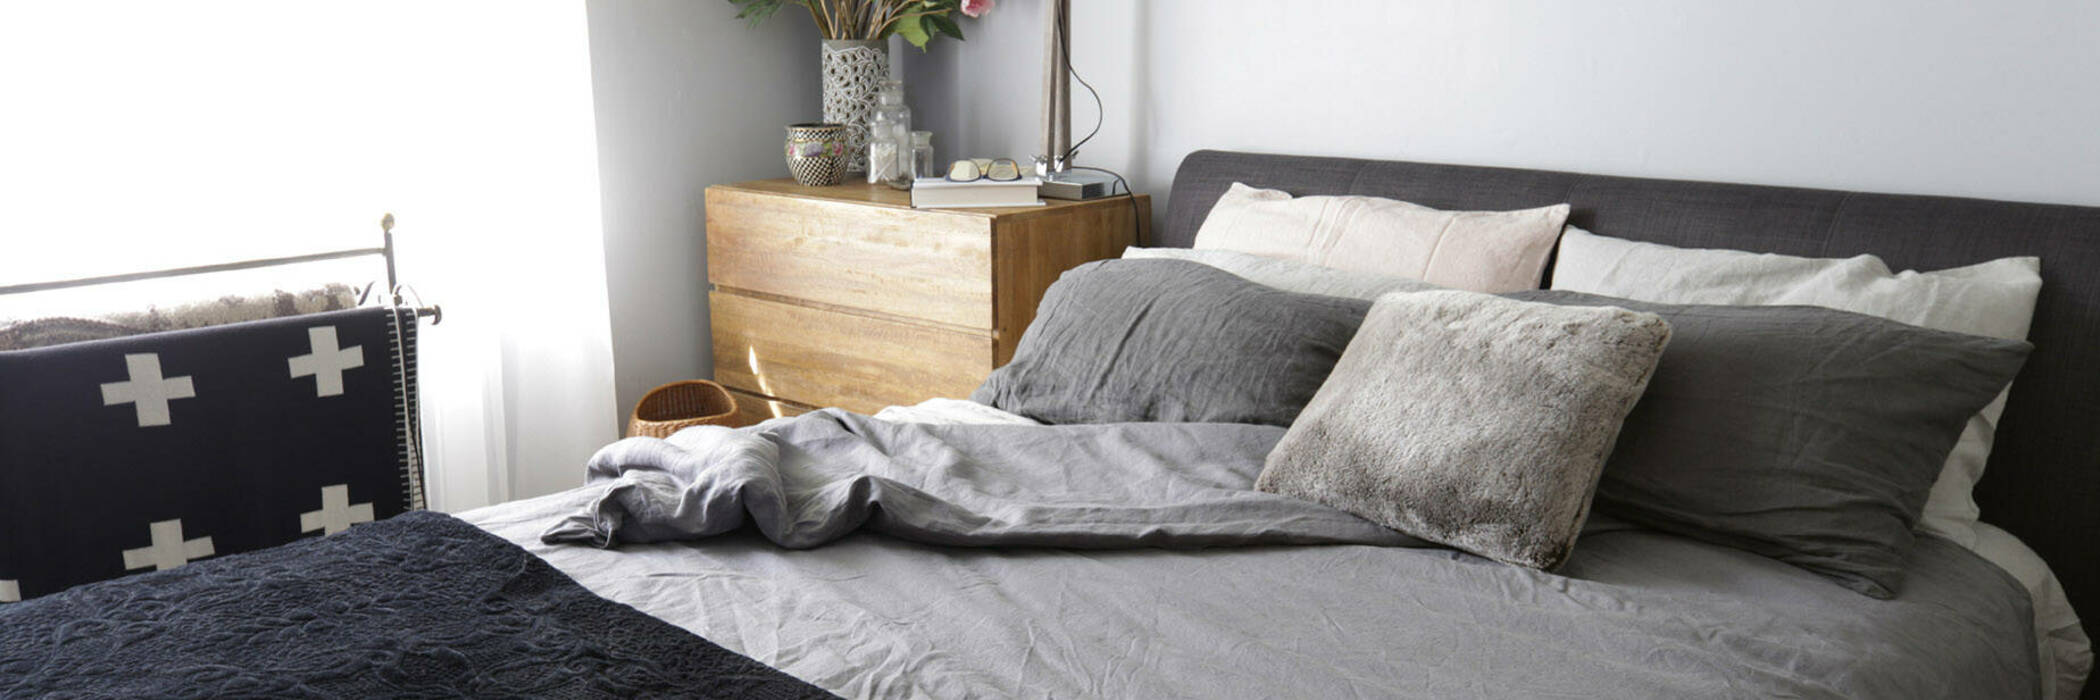 15sept buying a bed hero1